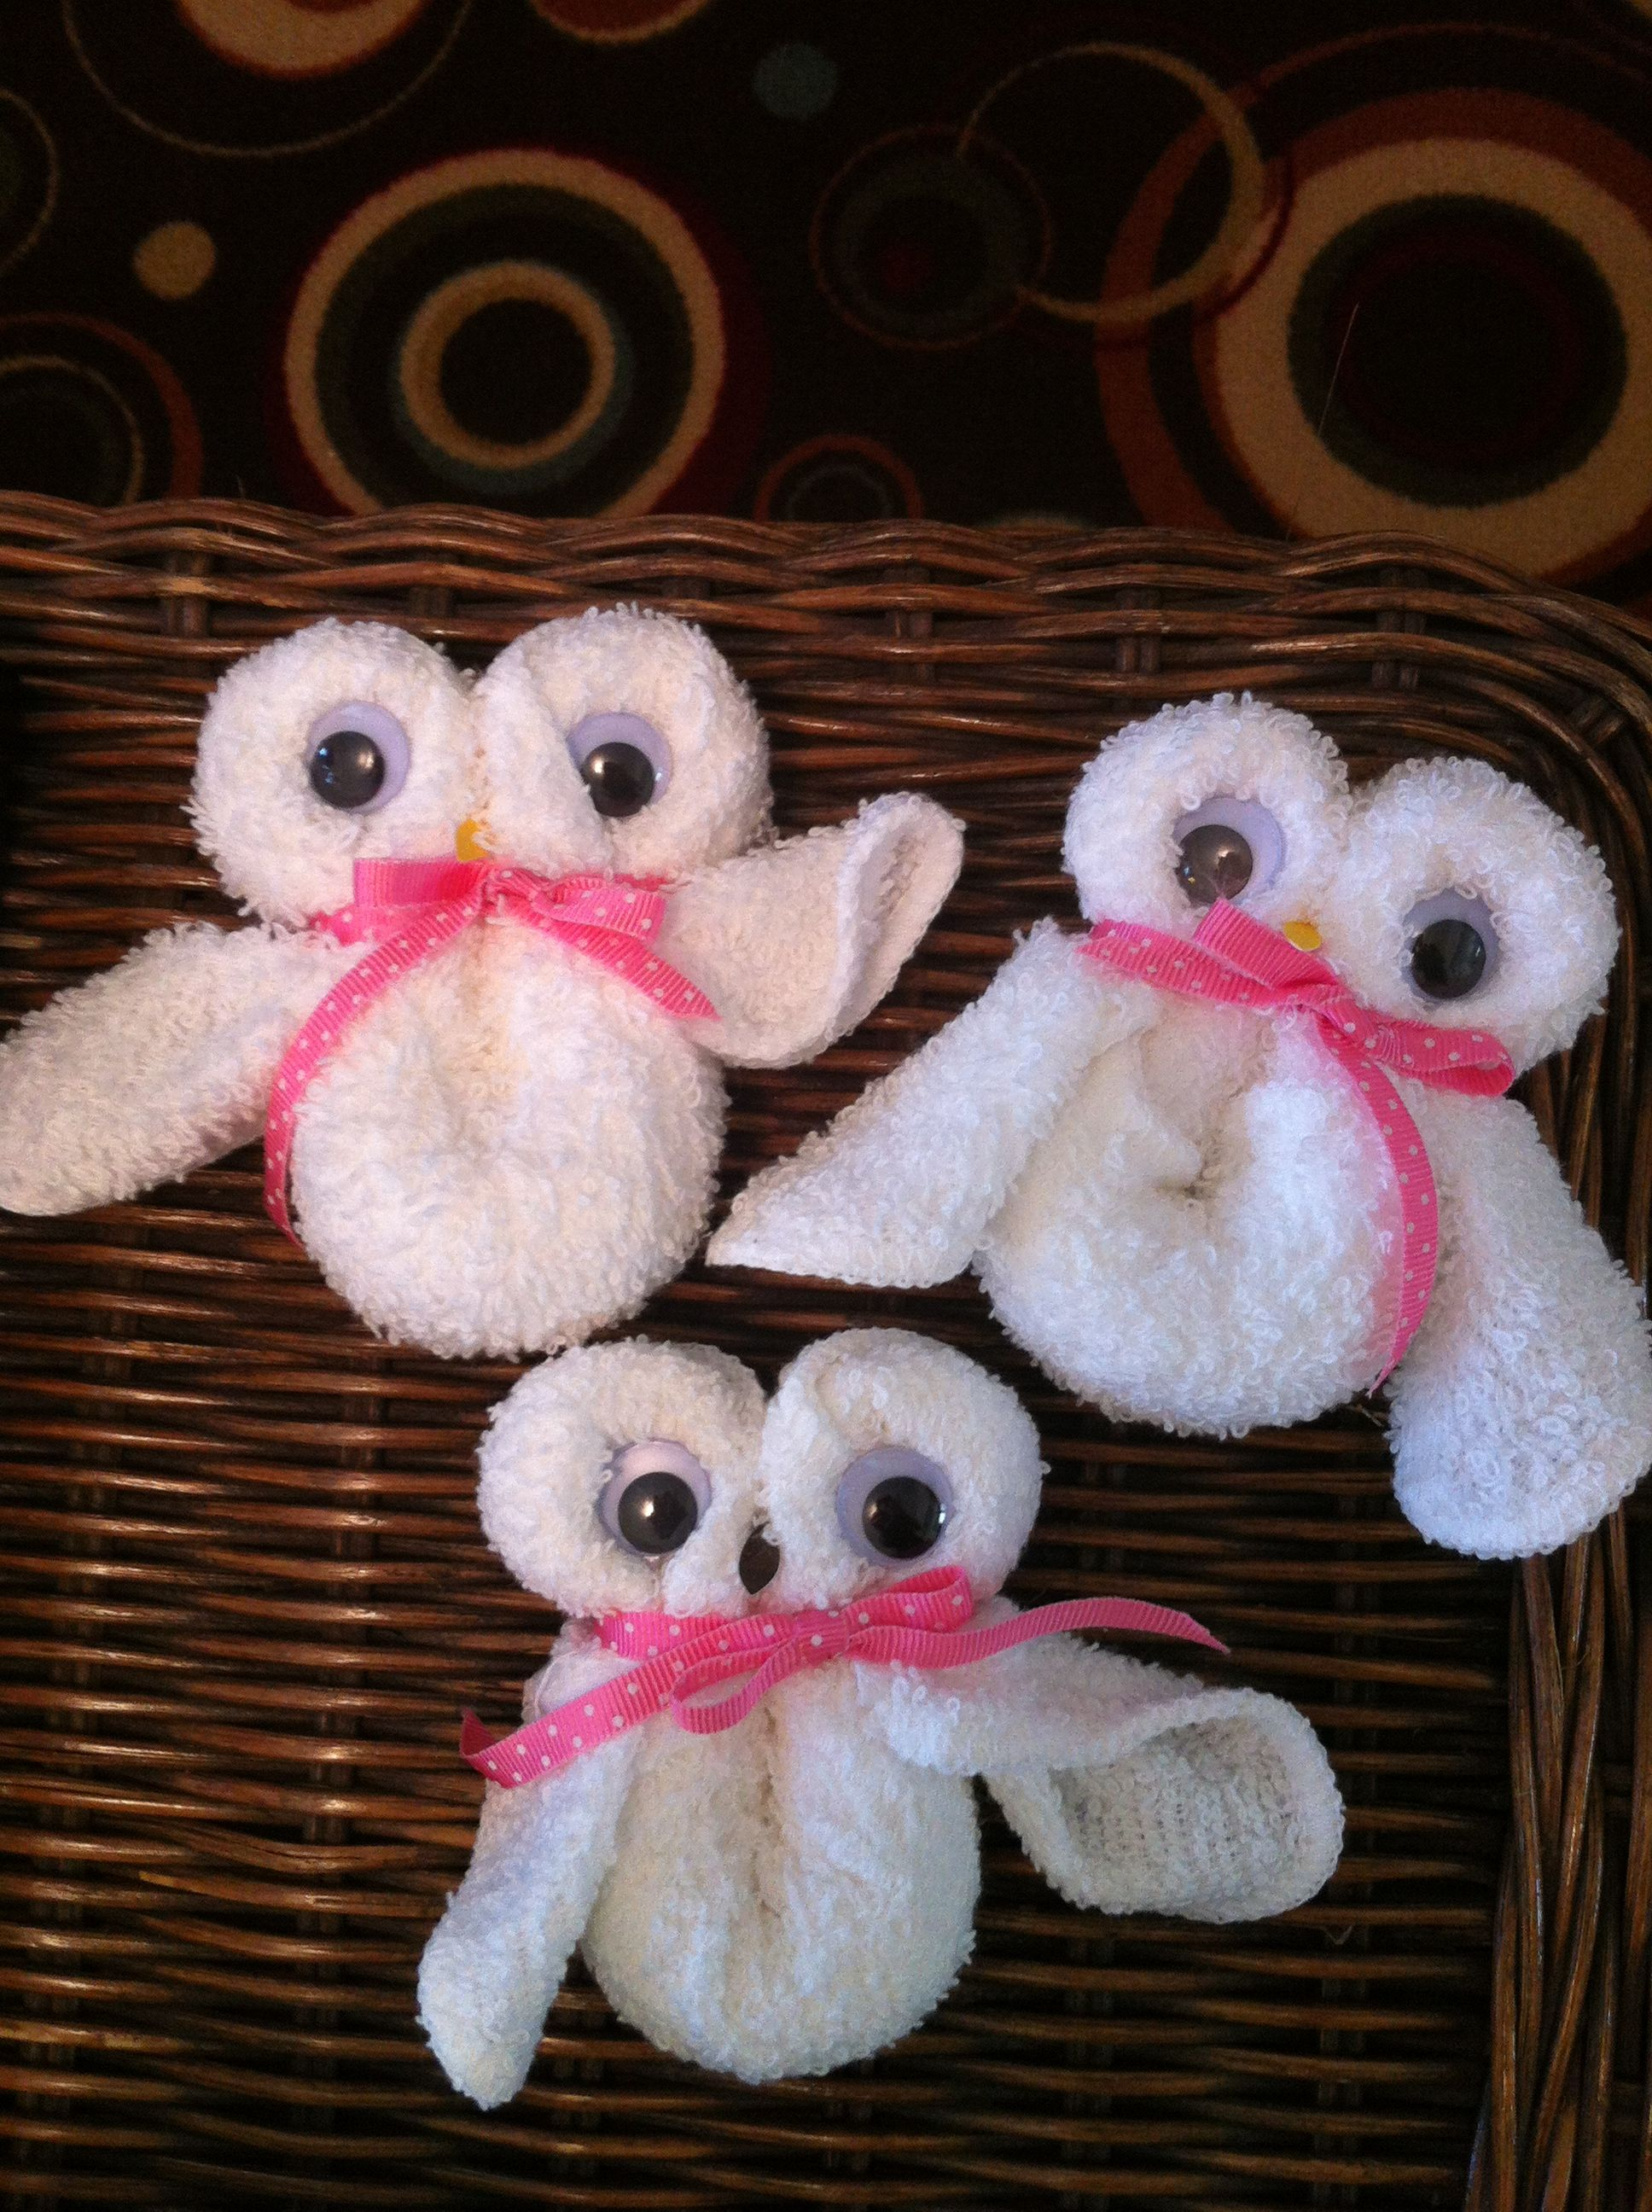 Cute owl washcloth favors for baby showers made with love 3 owl washcloth favors for baby showers make great baby shower ideas negle Choice Image